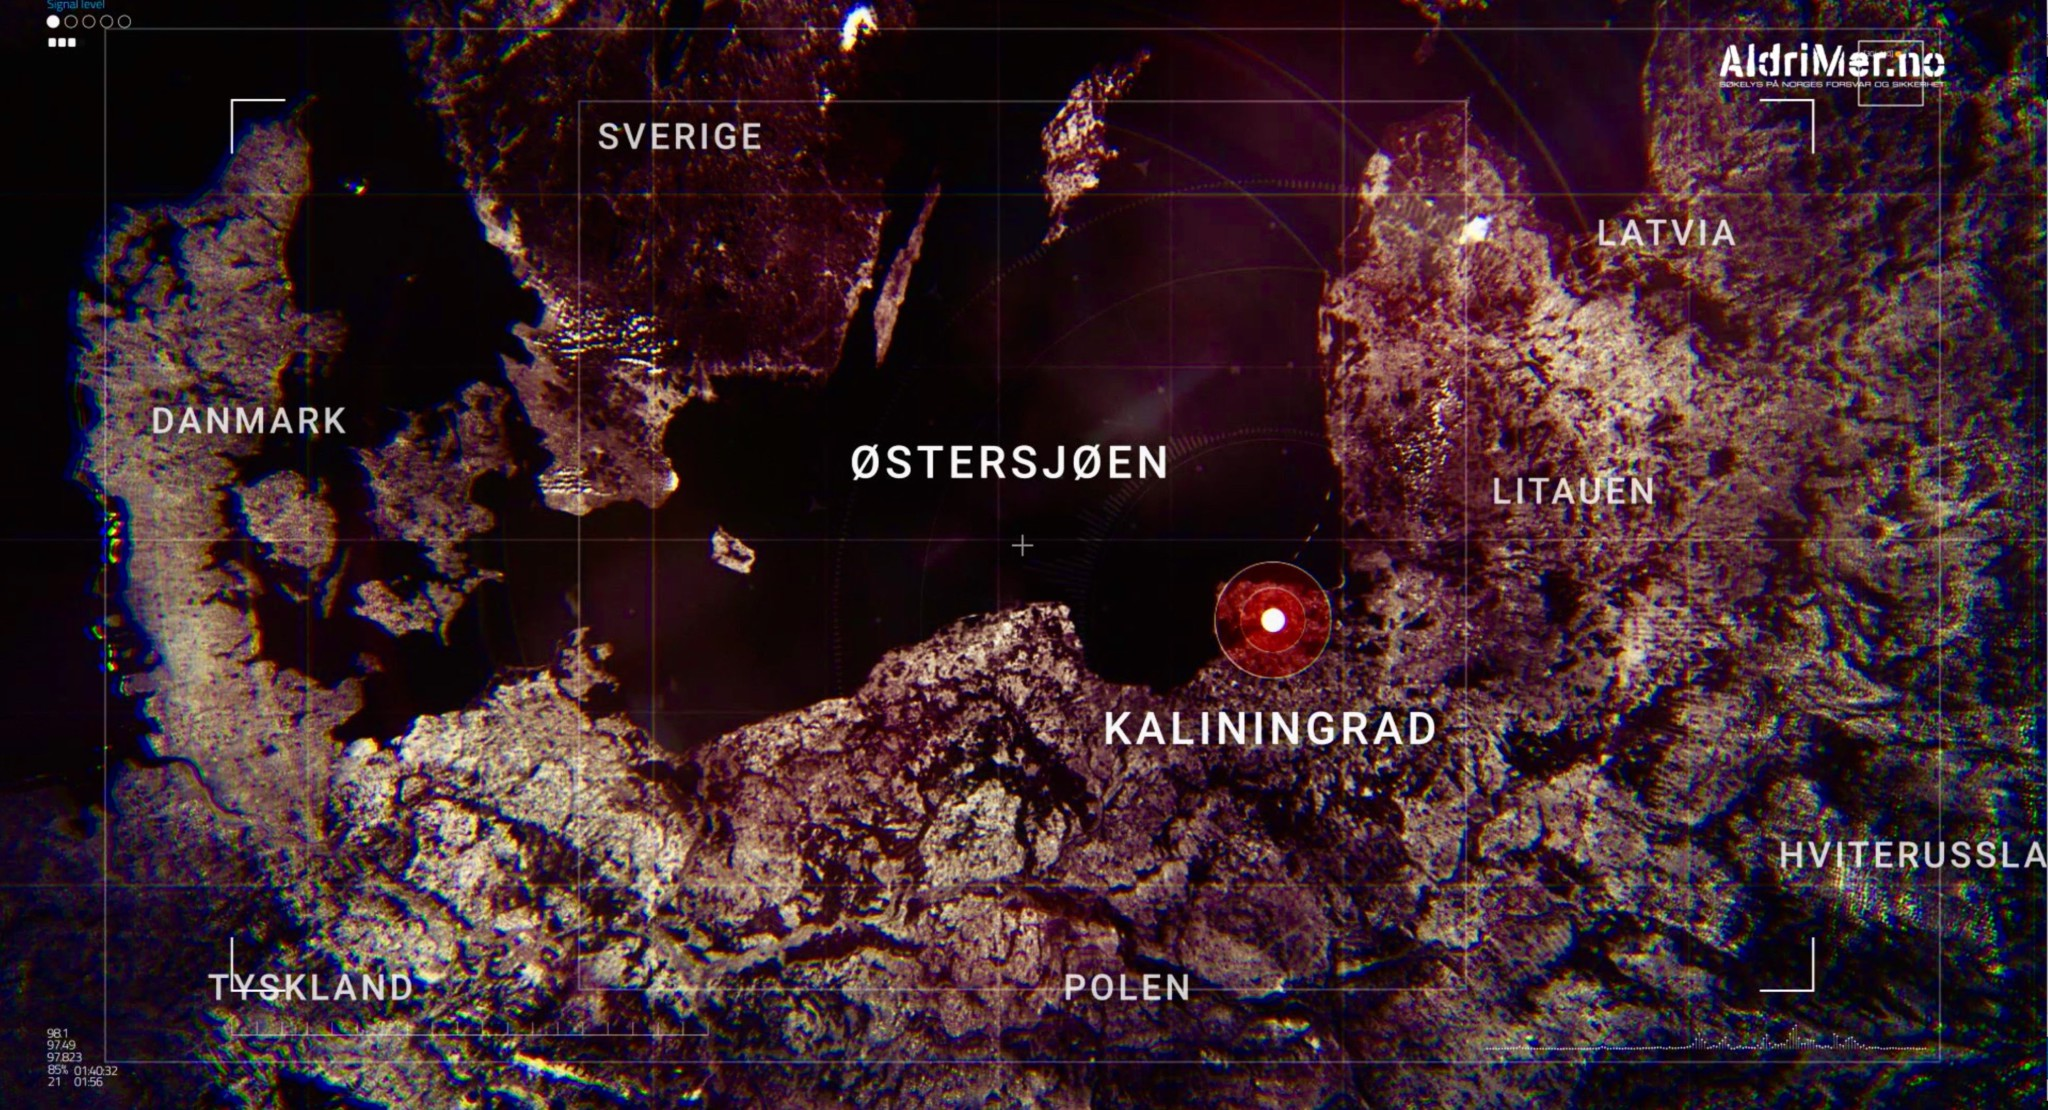 The Baltic region and the Russian military enclave Kaliningrad. Photo: ALDRIMER.NO